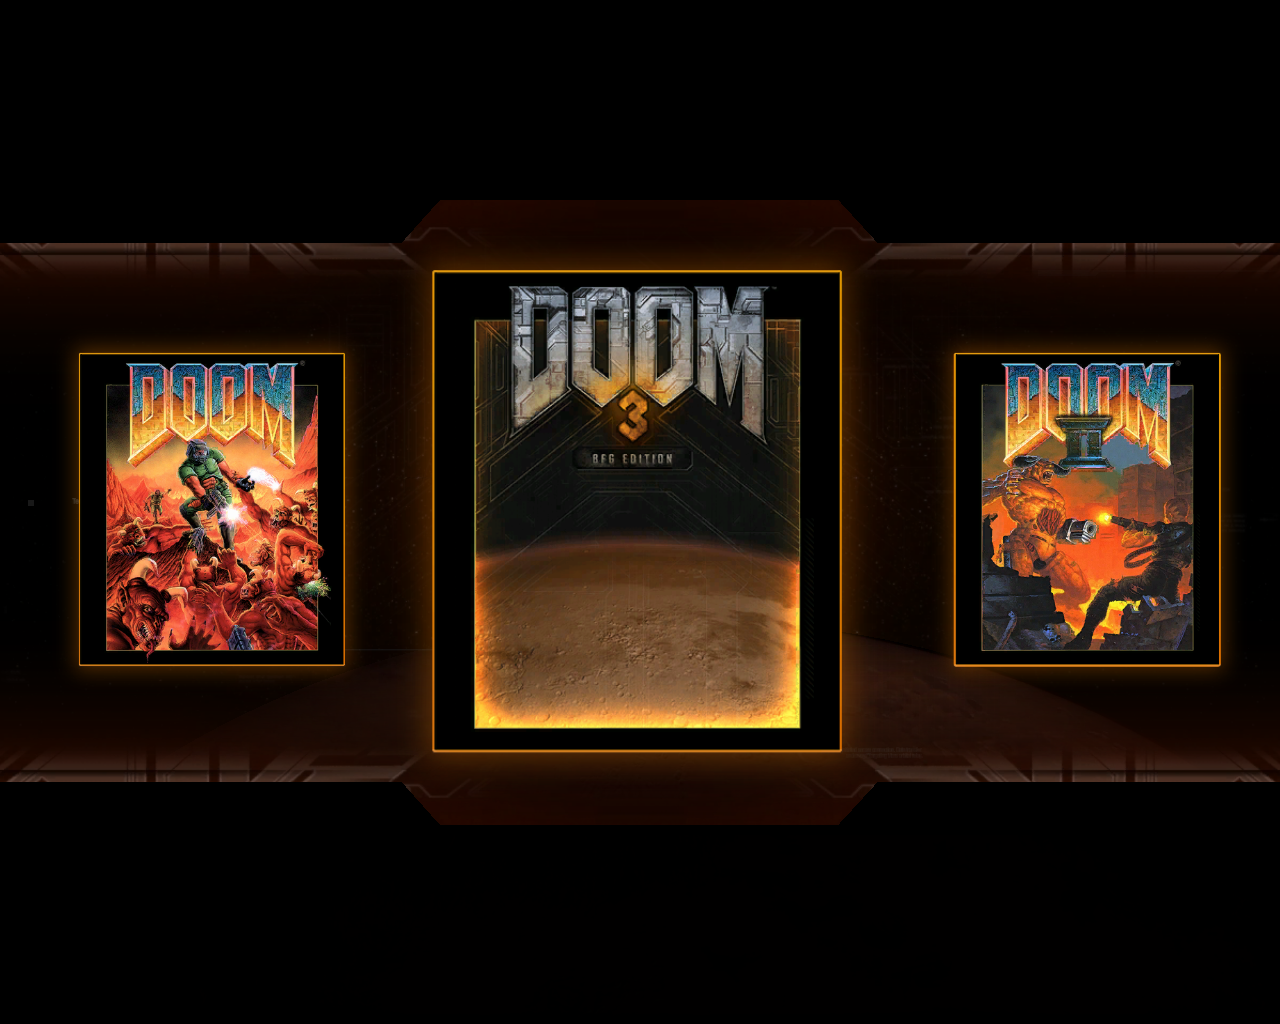 DOOM³: BFG Edition Windows Compilation main menu: choose a game to play